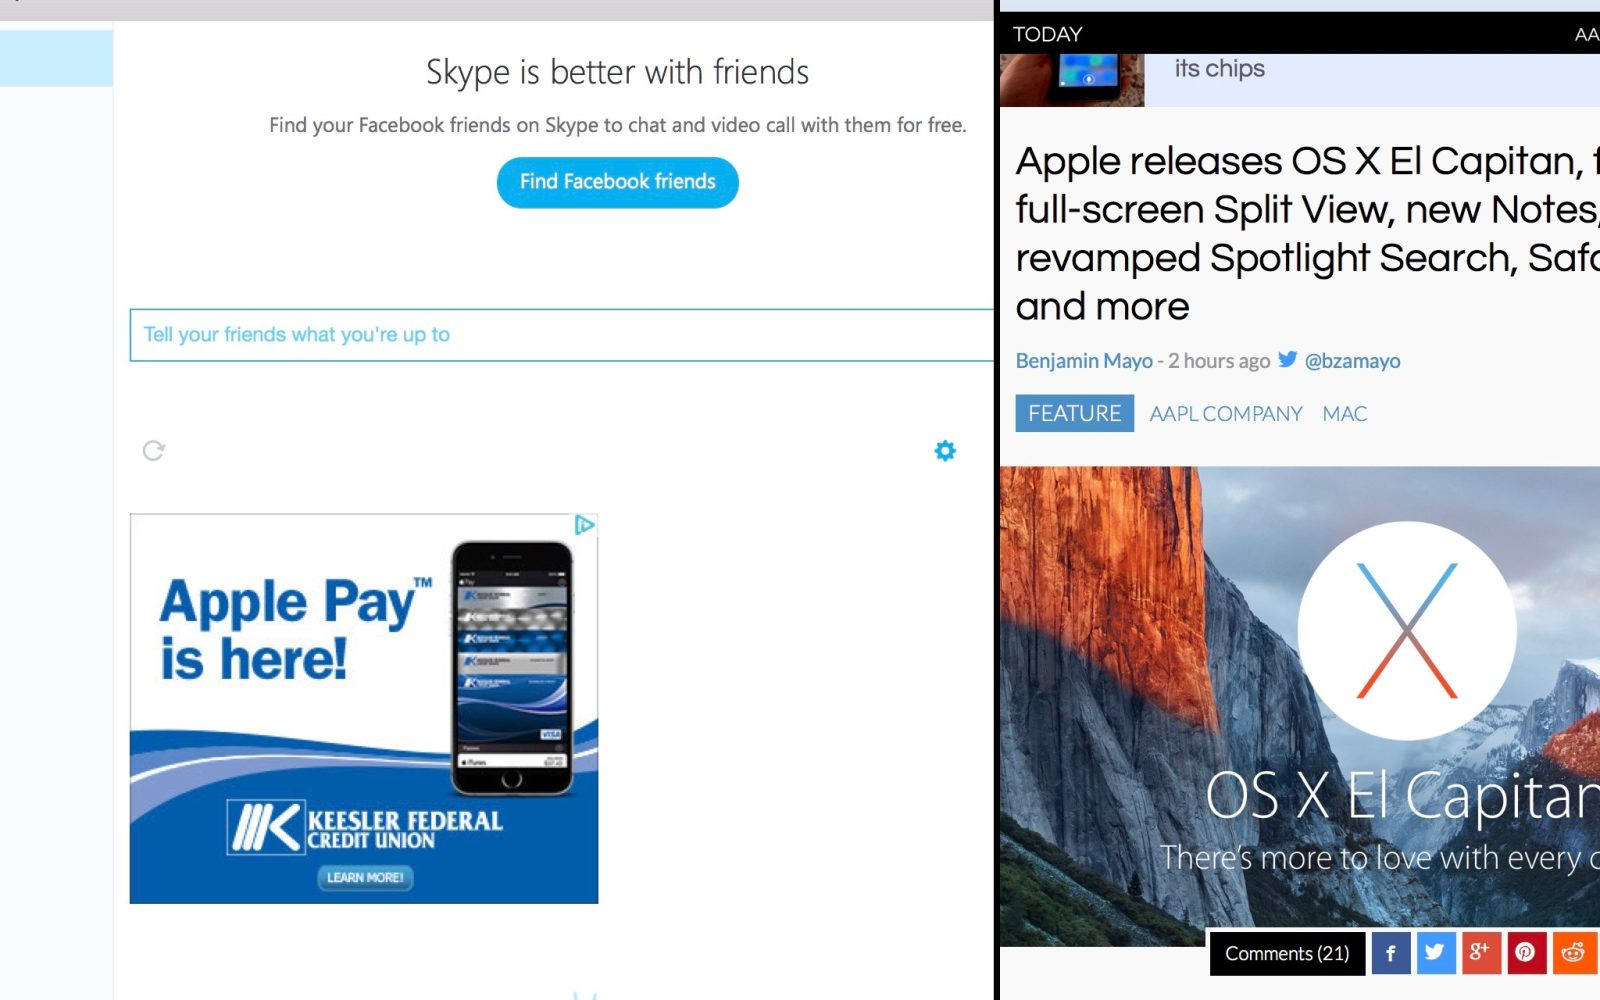 Skype for mac now supports split view on os x el capitan 9to5mac skype for mac now supports split view on os x el capitan ccuart Image collections